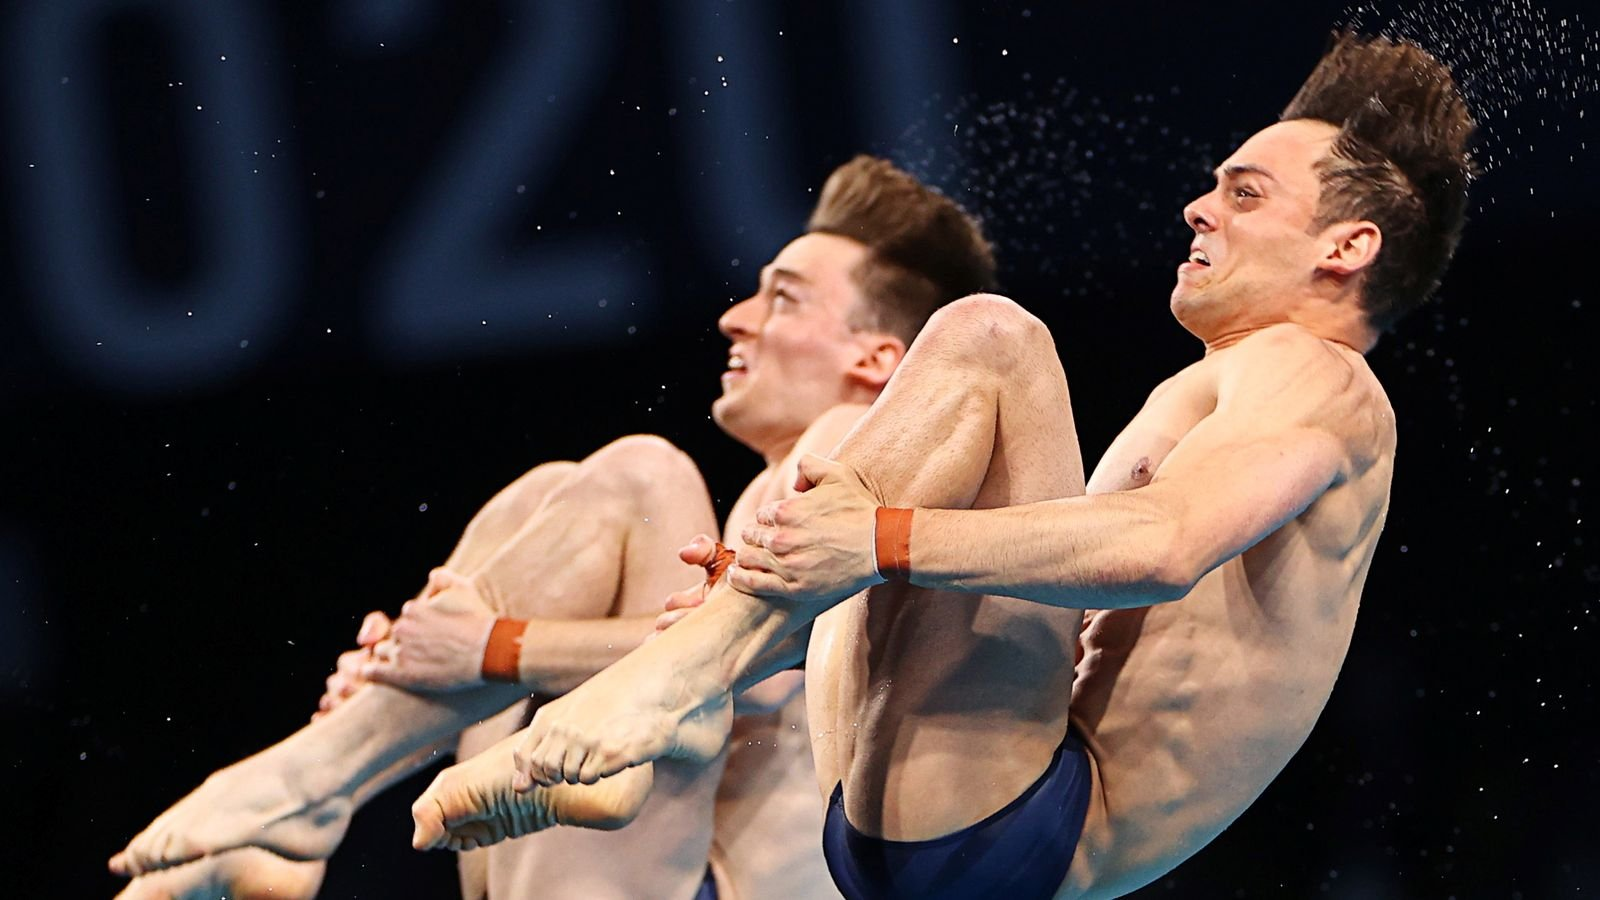 Tokyo Olympics: Tom Daley and Matty Lee win gold in 10-metre synchronised dive